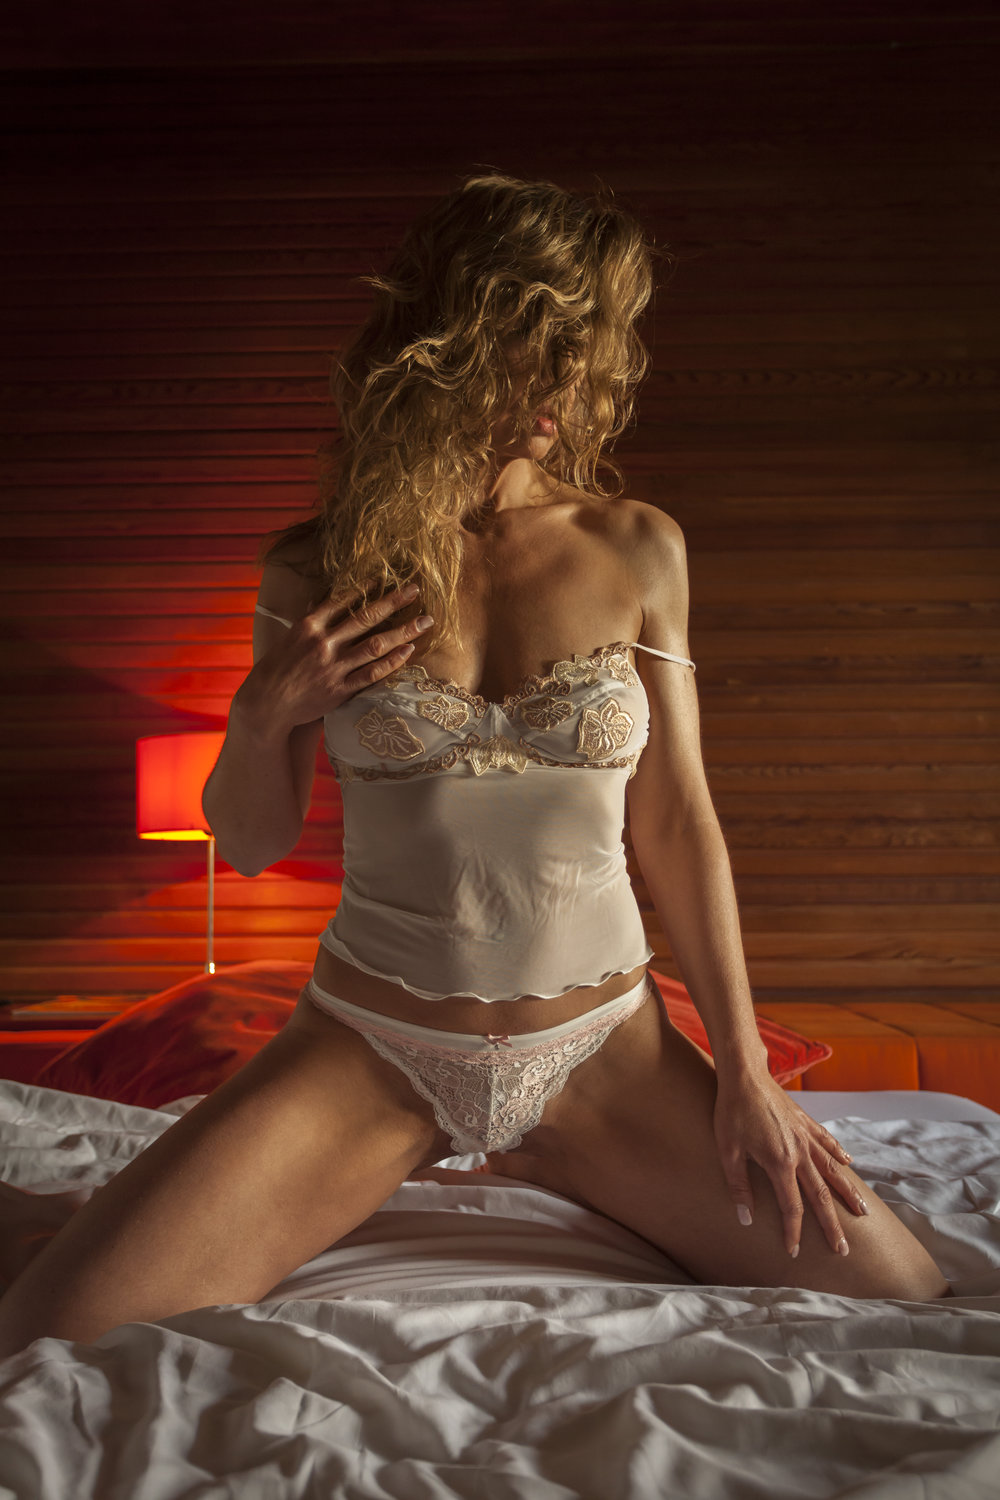 escort-flensburg-lady-madeleine-perfect-date-escort-008.jpg